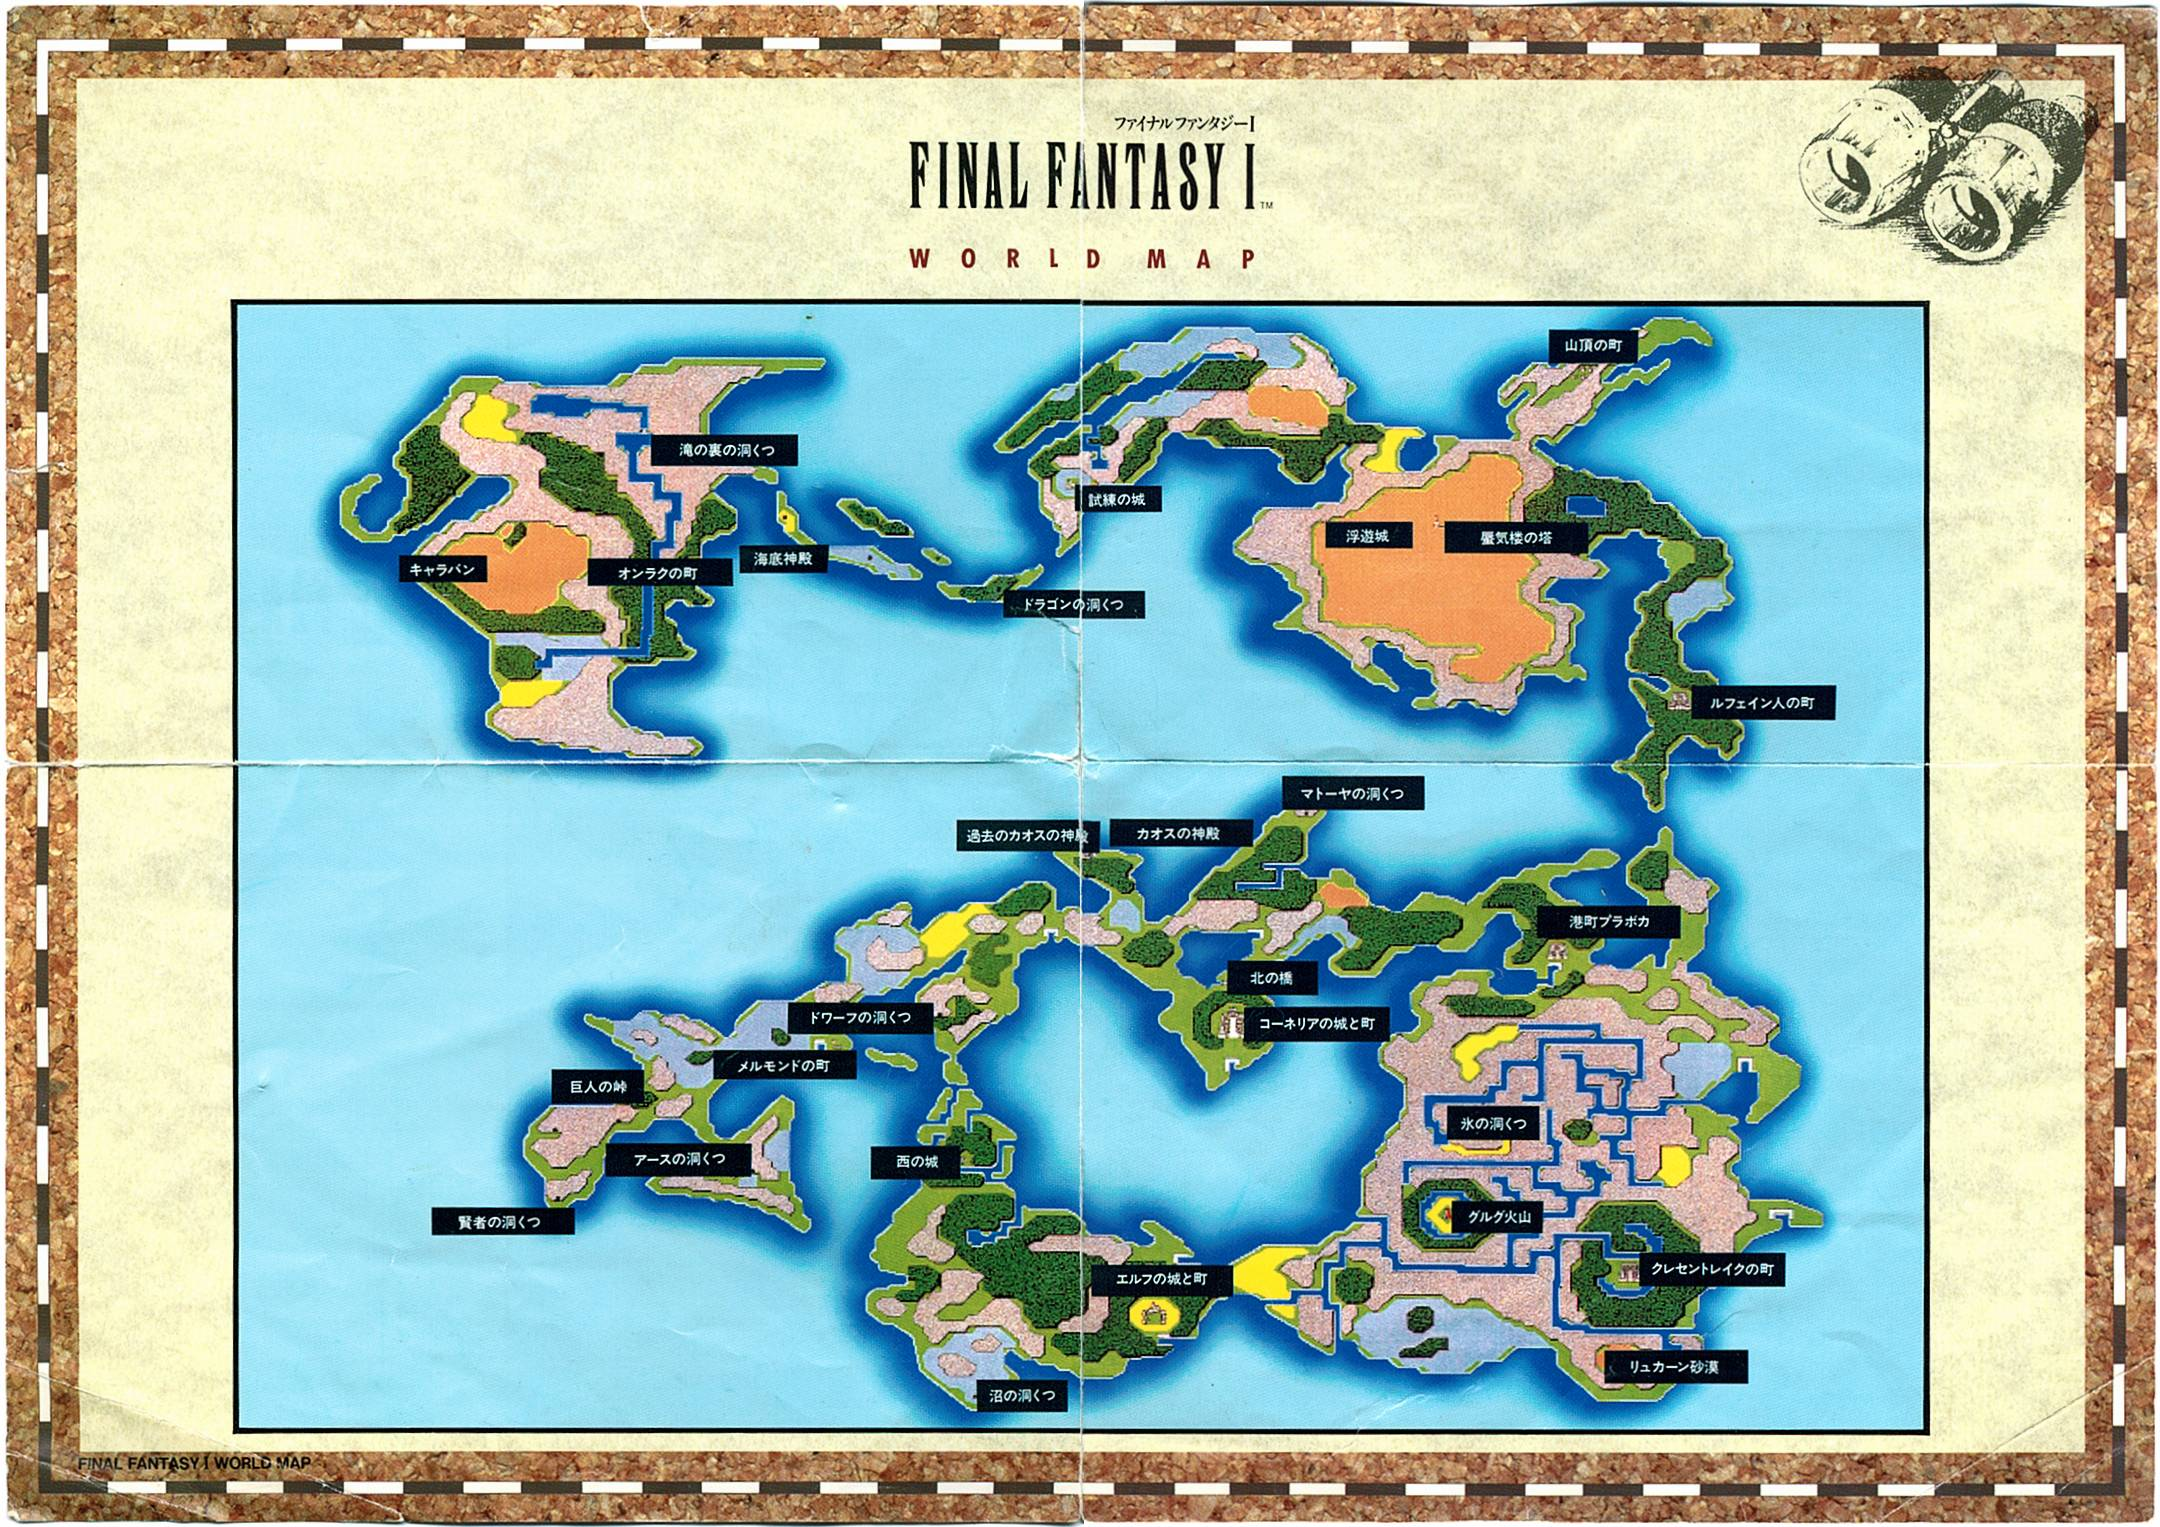 World map | Final Fantasy Wiki | FANDOM powered by Wikia